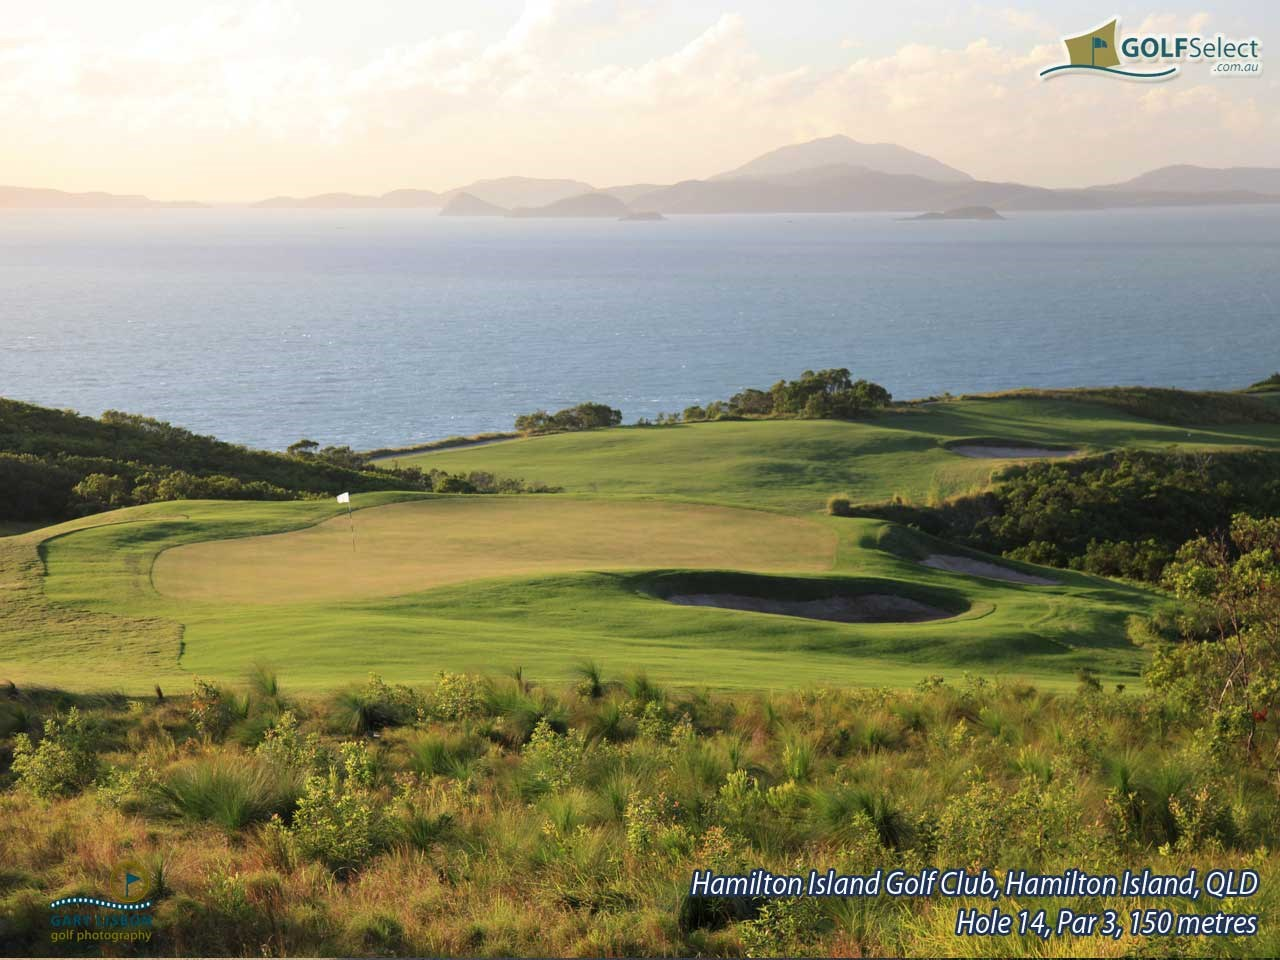 Hamilton Island Golf Club Hole 14, Par 3, 150 metres